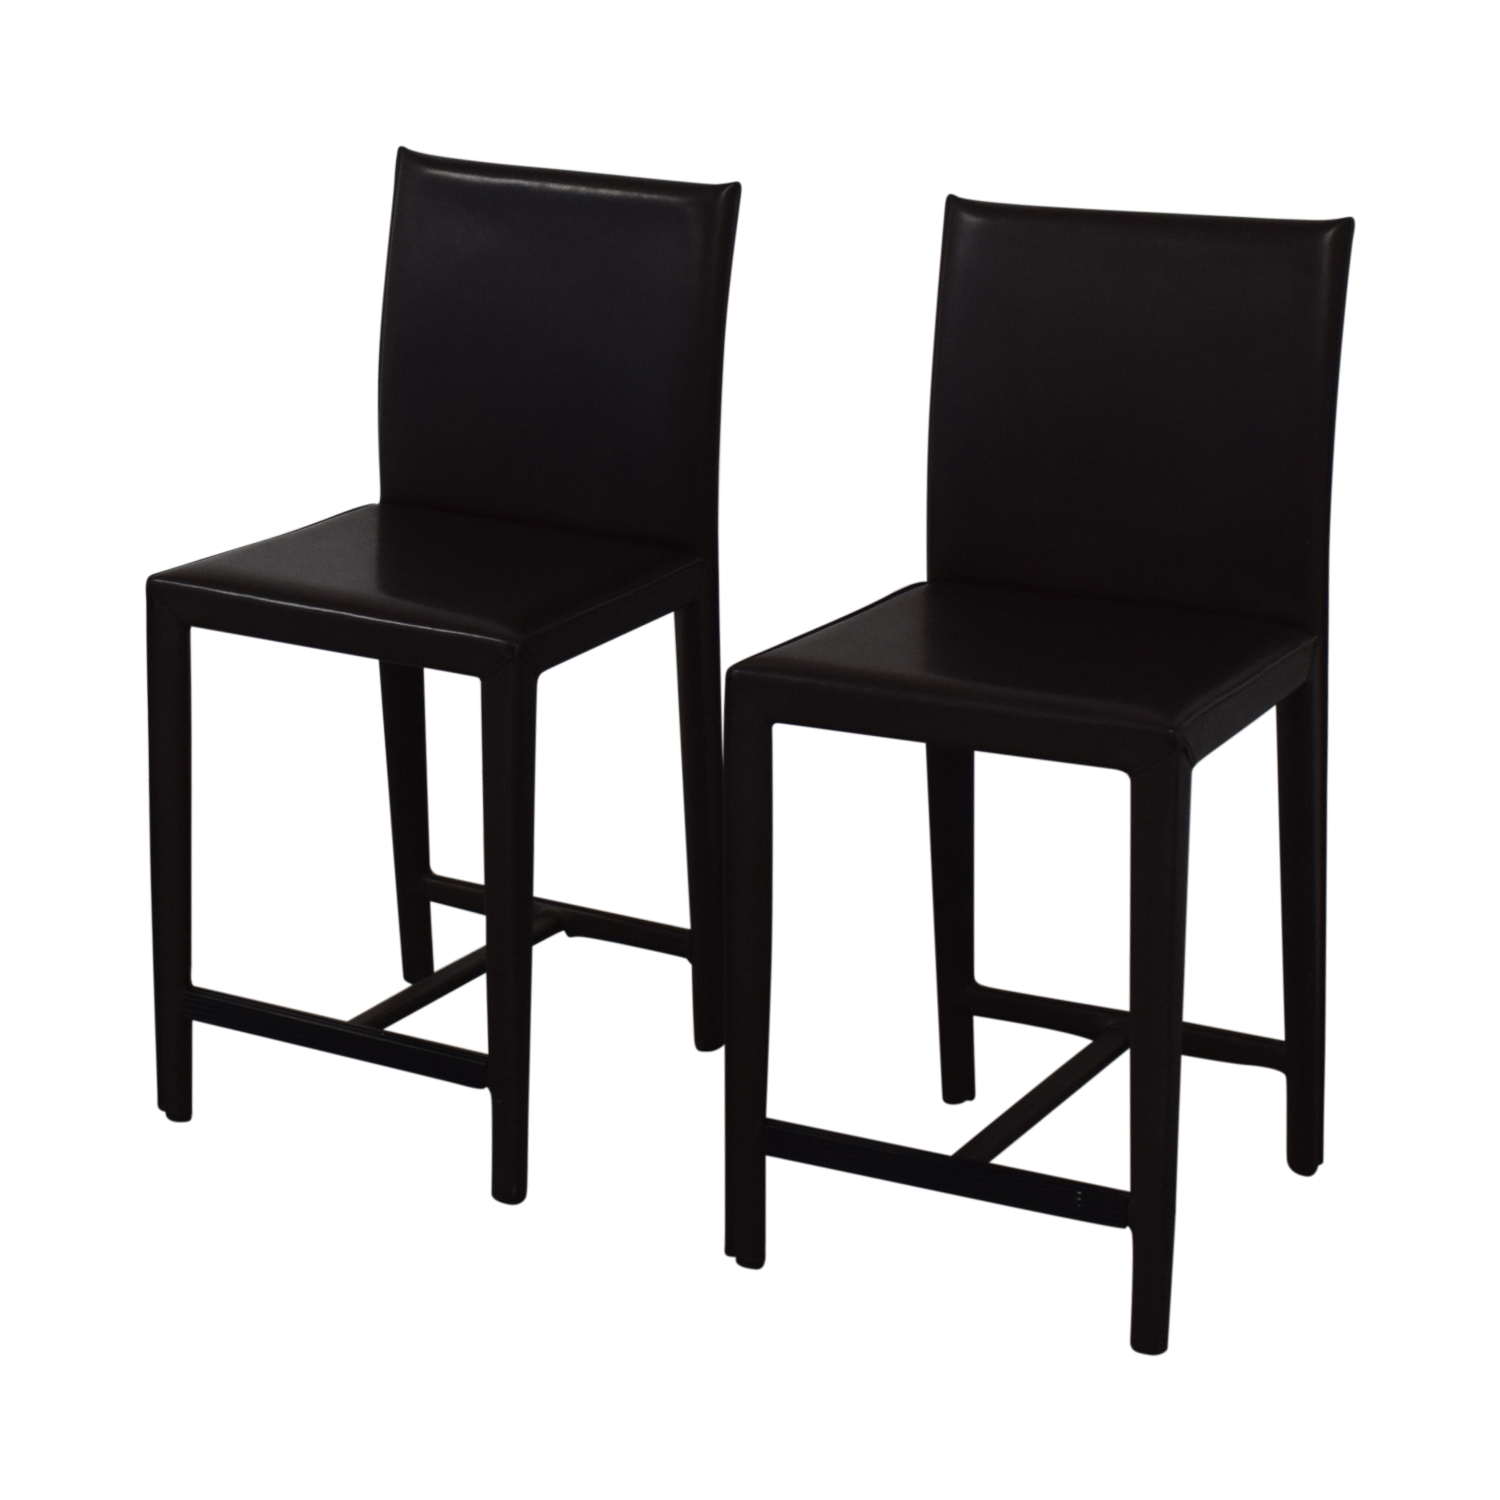 buy Maria Yee Maria Yee Set Of Barstools online